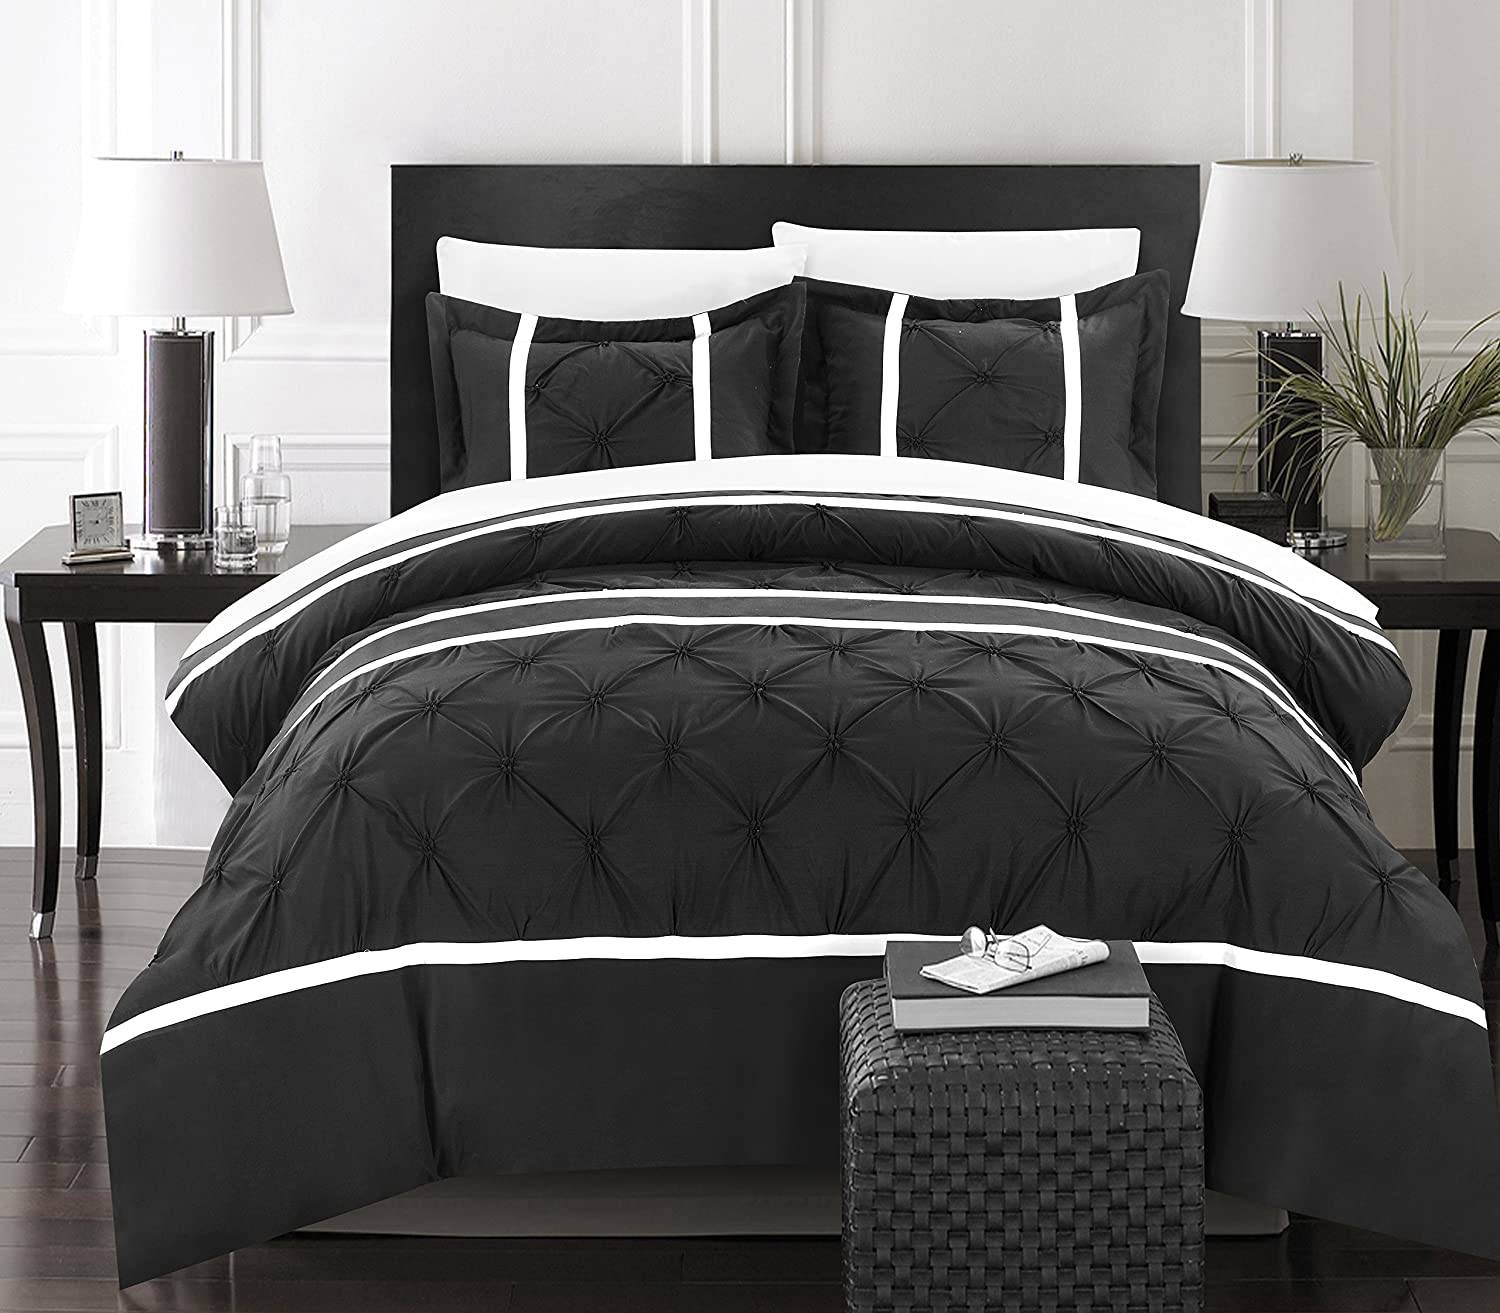 Chic Home 3 Piece Veronica Pinch Pleat Pintuck Duvet Cover Set, King, Black